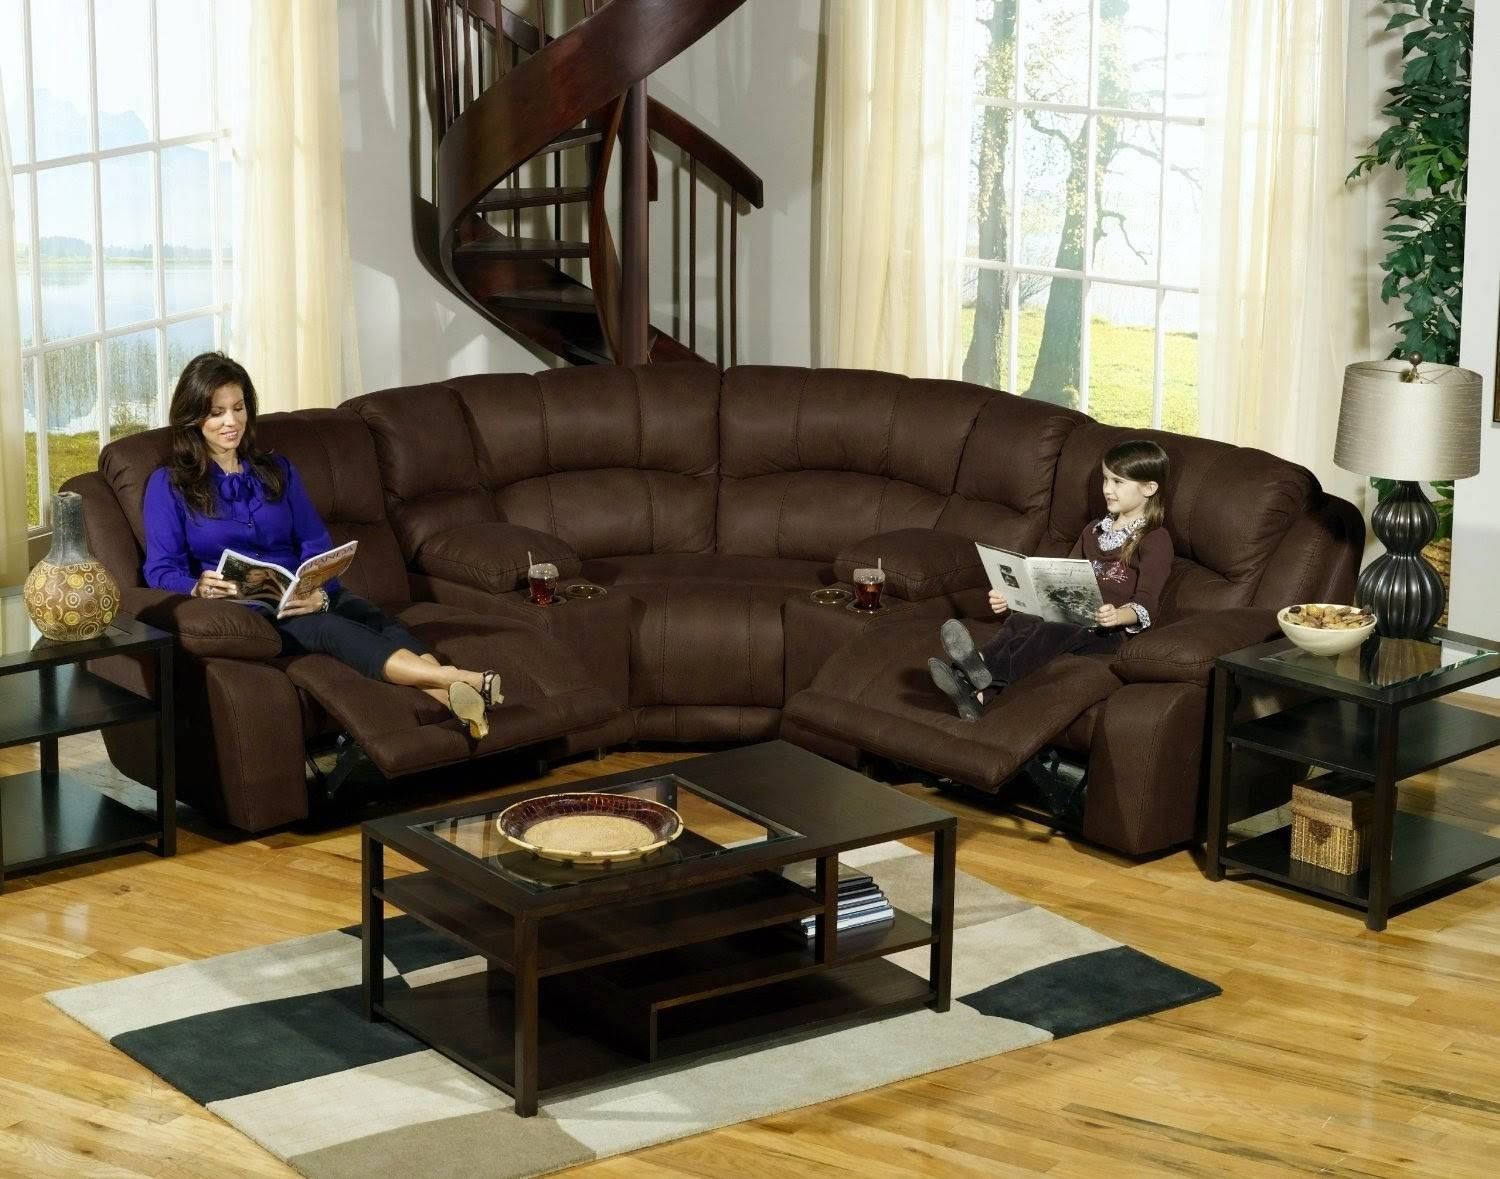 Stunning Leather Sectional Sofa With Power Recliner 17 On Berkline intended for Berkline Sofa (Image 30 of 30)